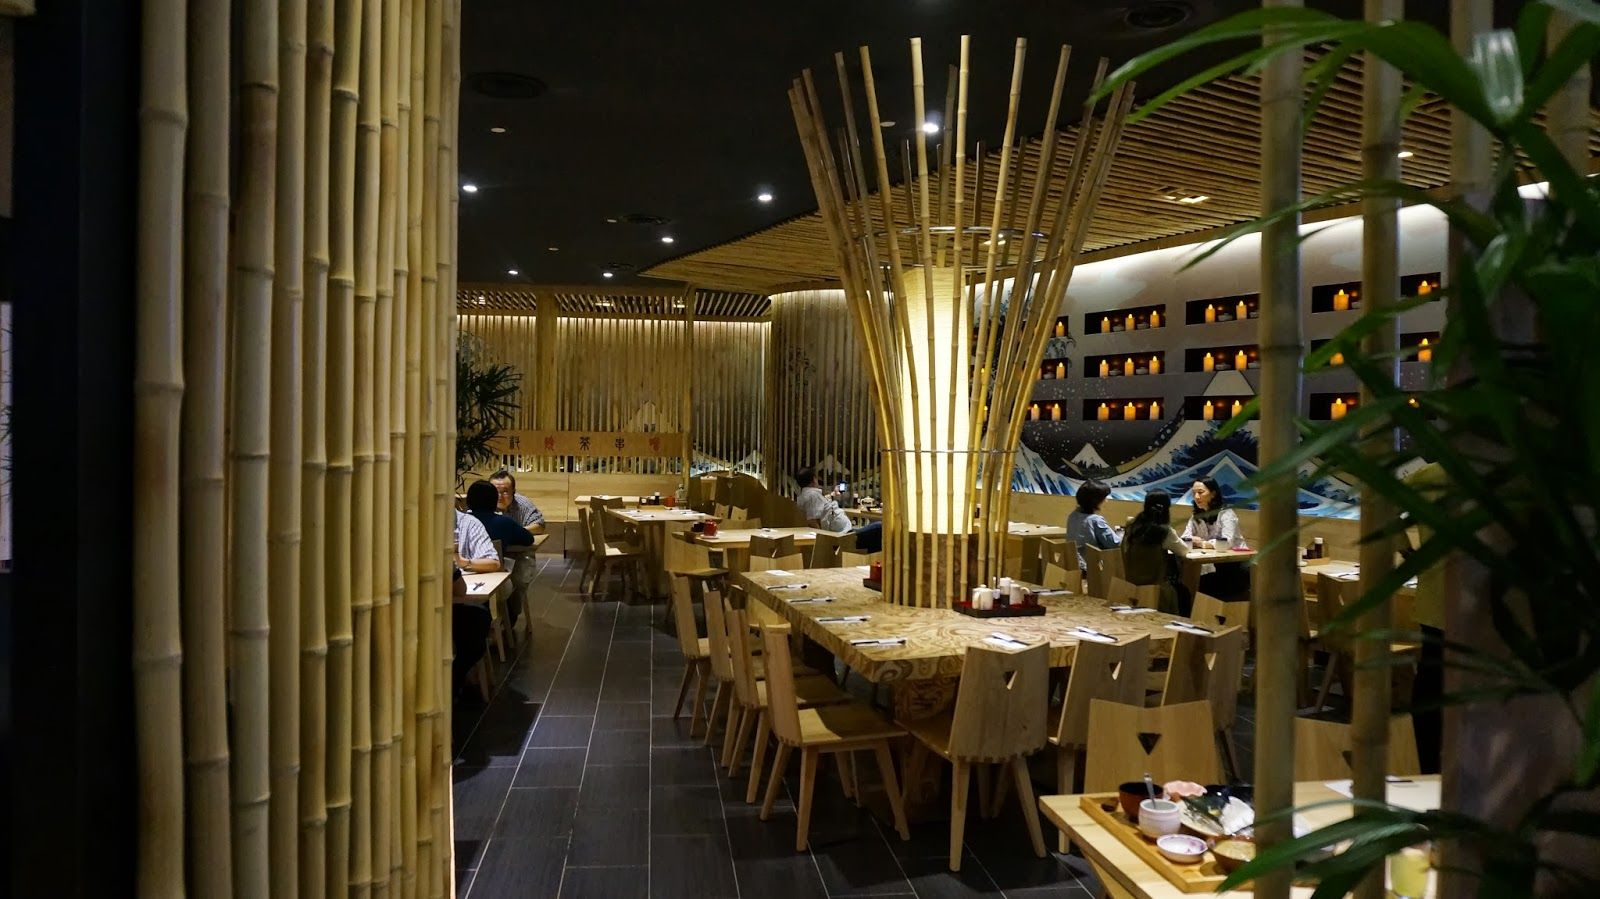 decorating bamboo decorating ideas interior design japanese restaurant design ideas with bamboo interior decoration utilizing bamboo interior design - Cyan Cafe Interior